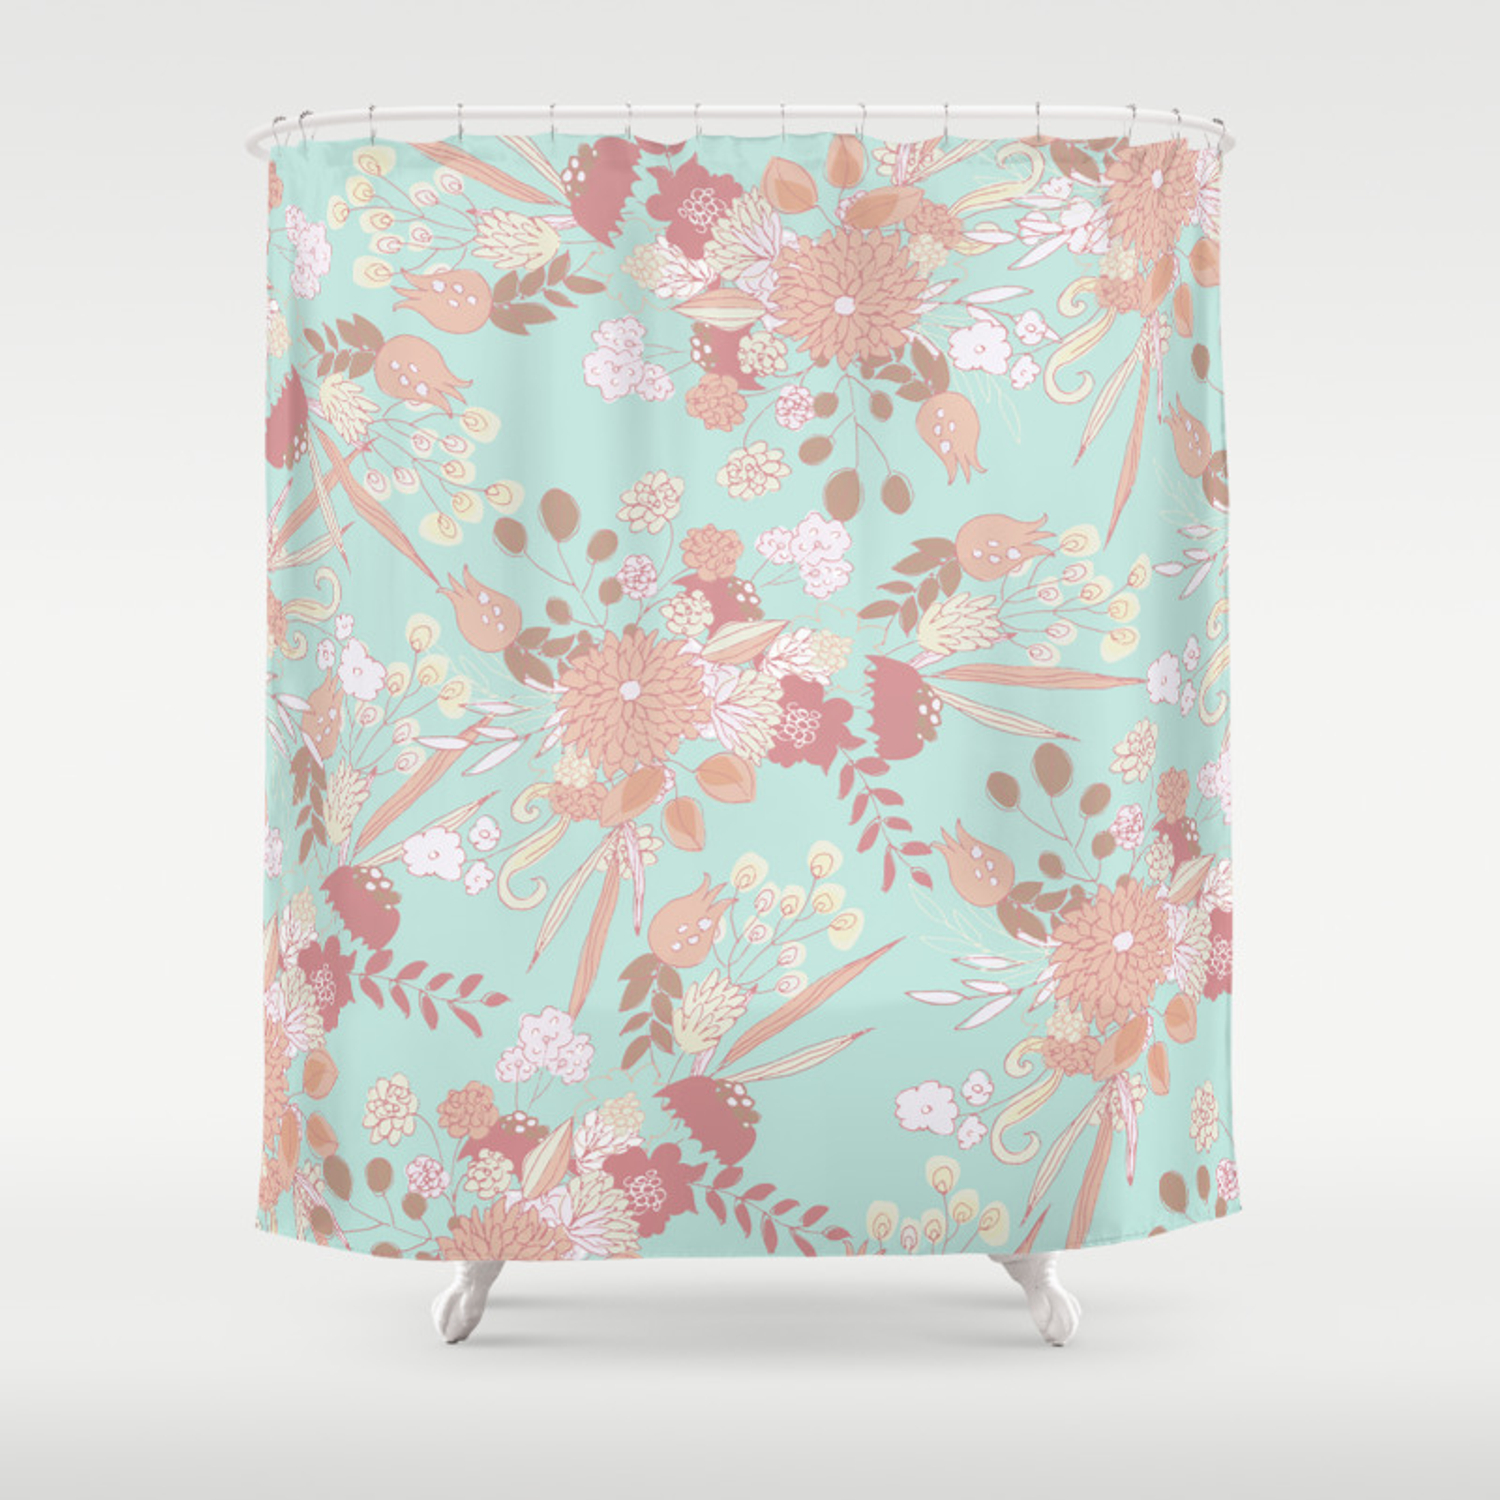 Vintage Green Pastel Coral White Rustic Floral Shower Curtain By Pink Water Society6